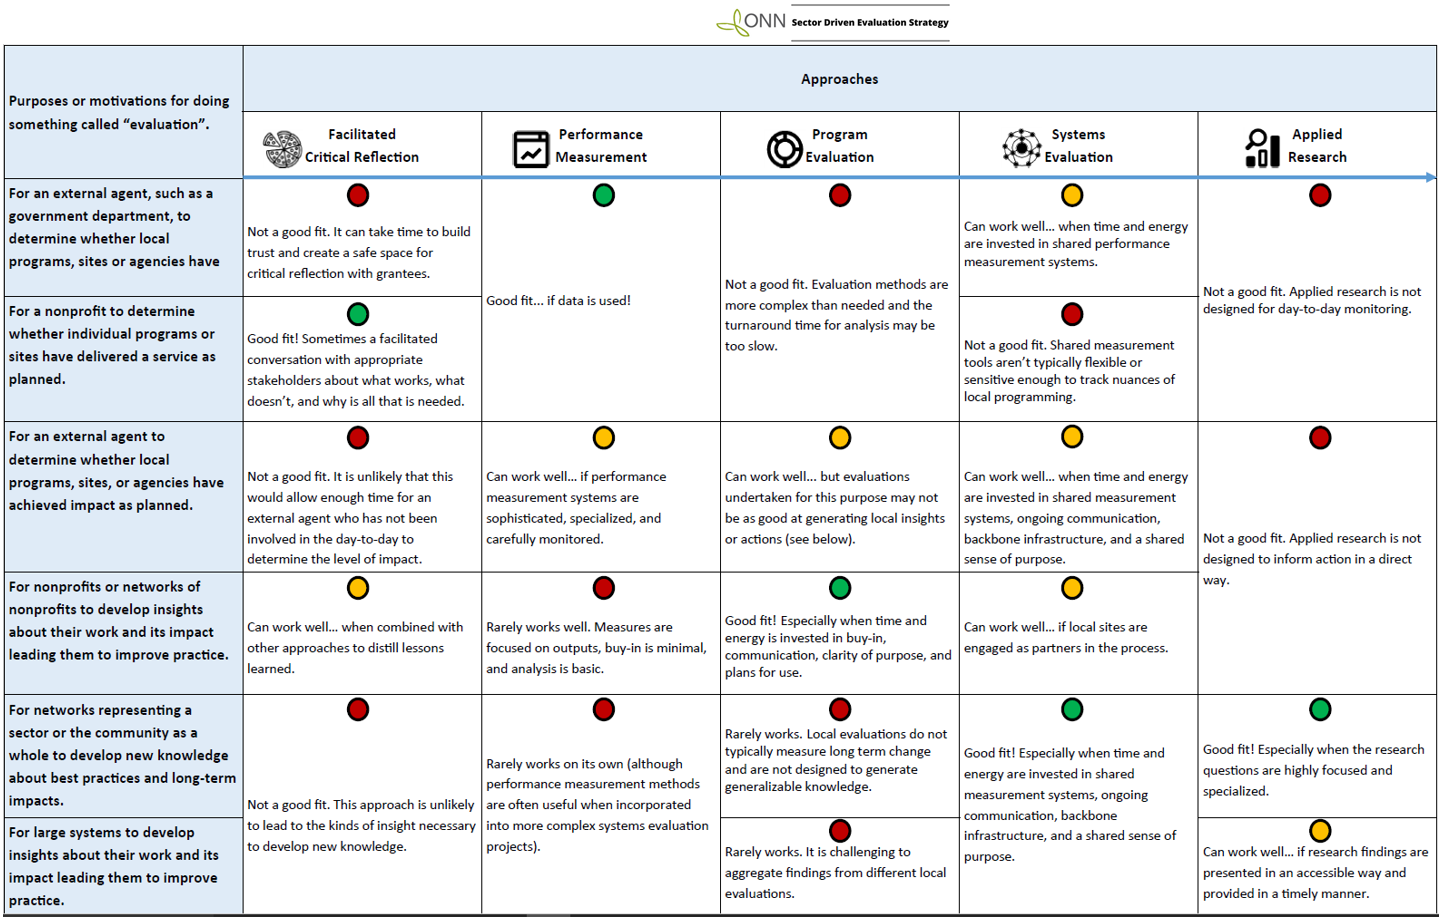 Evaluation Approaches Resource 2.0 Graphic